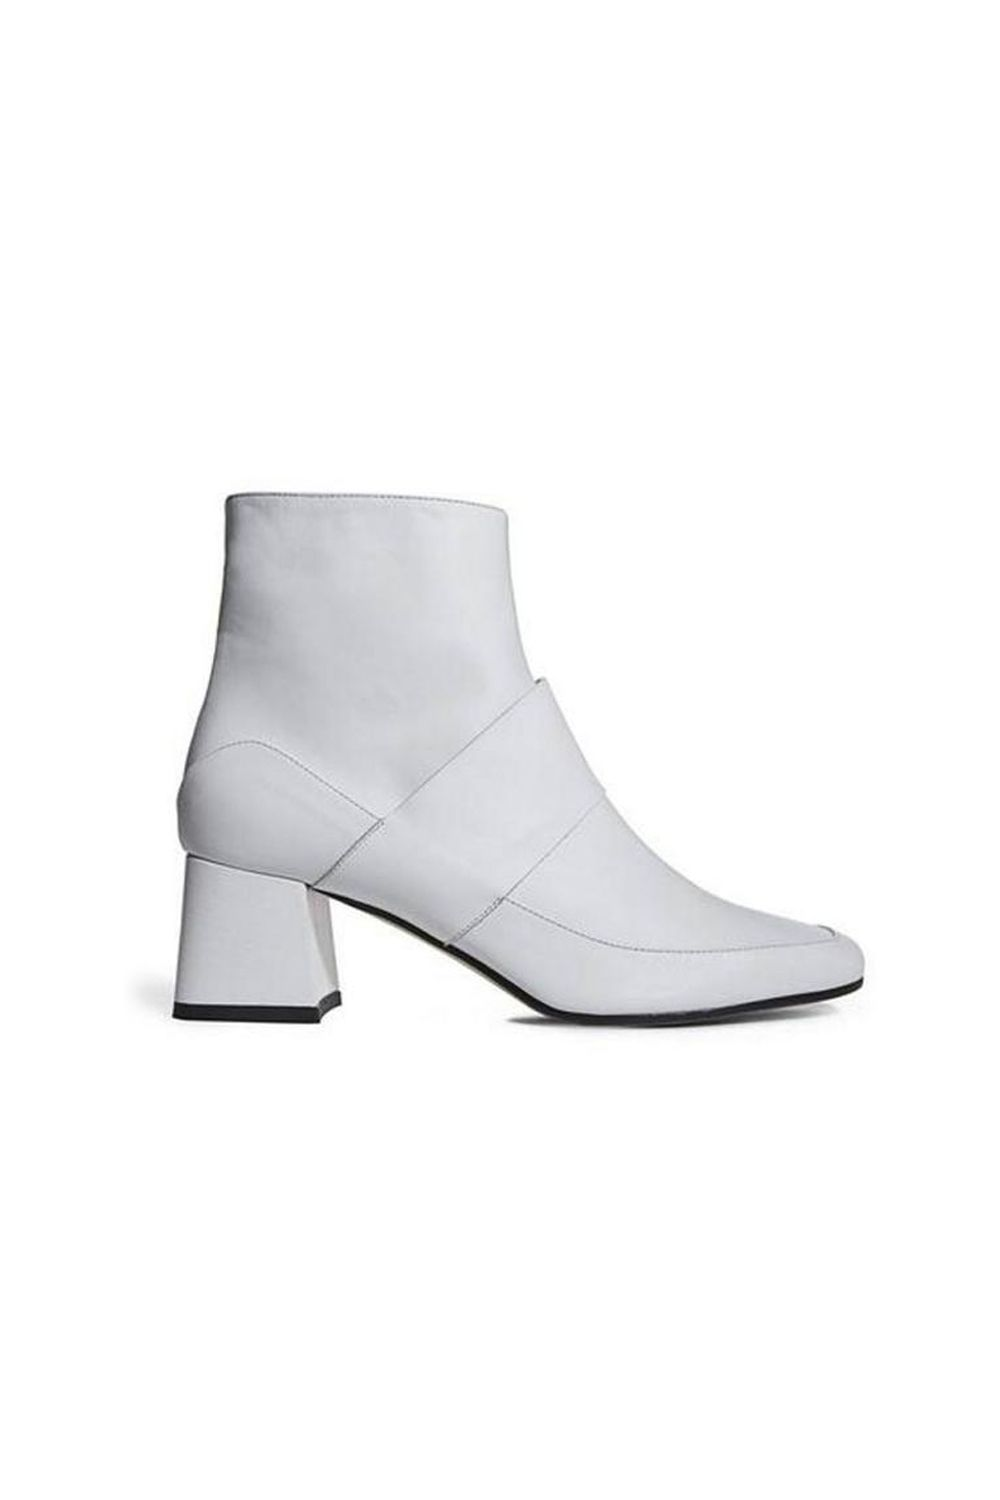 "<p>Shout it from the rooftops: Get you a white boot.&nbsp&#x3B;</p><p><em data-redactor-tag=""em"" data-verified=""redactor"">ASKA Collection, $450</em><span class=""redactor-invisible-space"" data-verified=""redactor"" data-redactor-tag=""span"" data-redactor-class=""redactor-invisible-space""><em data-redactor-tag=""em"" data-verified=""redactor""></em></span><br></p><p><strong data-redactor-tag=""strong"" data-verified=""redactor"">BUY IT:&nbsp&#x3B;<a href=""https://askacollection.com/collections/booties/products/goldie?variant=26325228678"" target=""_blank"">askacollection.com</a>.</strong></p>"